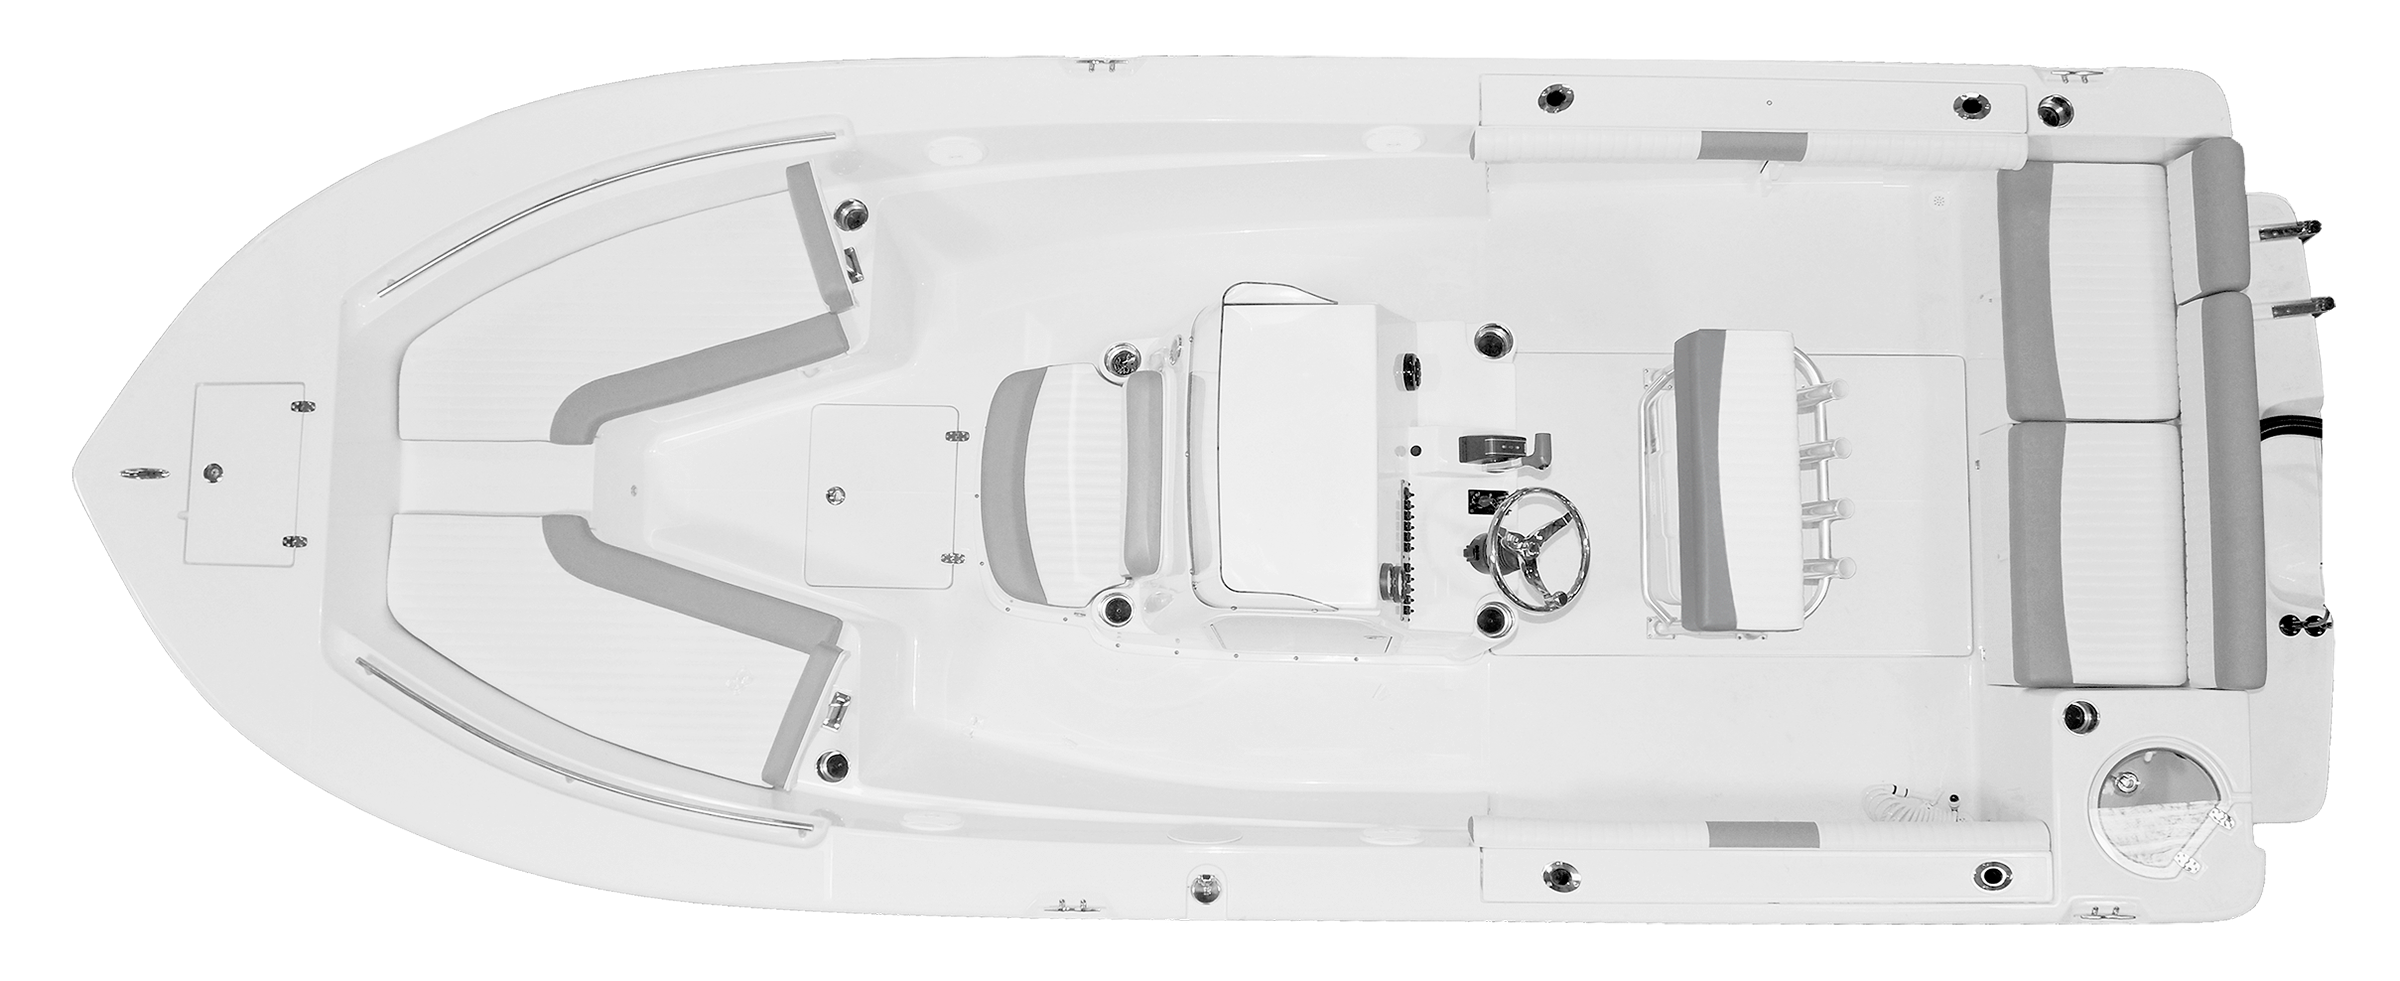 21-Foot Center Console Deck Layout